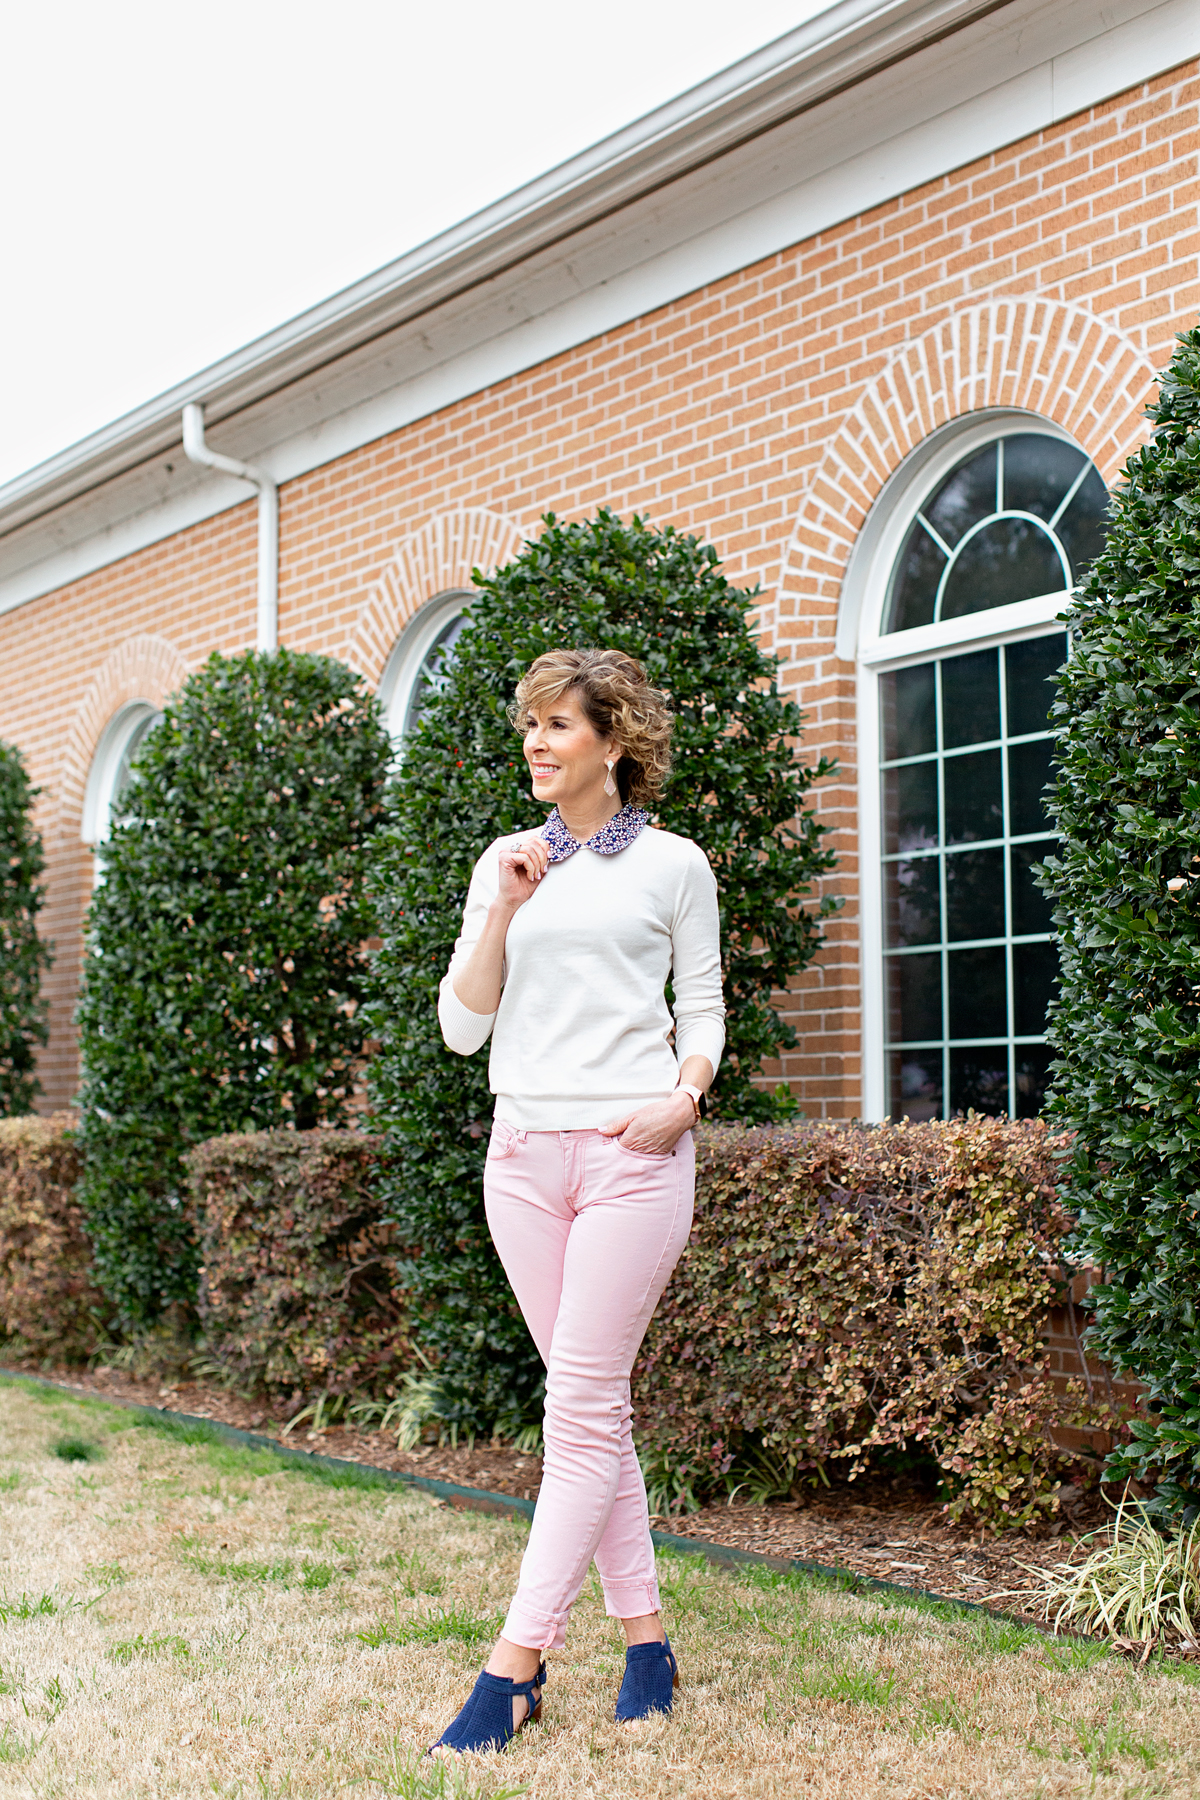 woman wearing pink jeans and holding the blue collar of white sweater